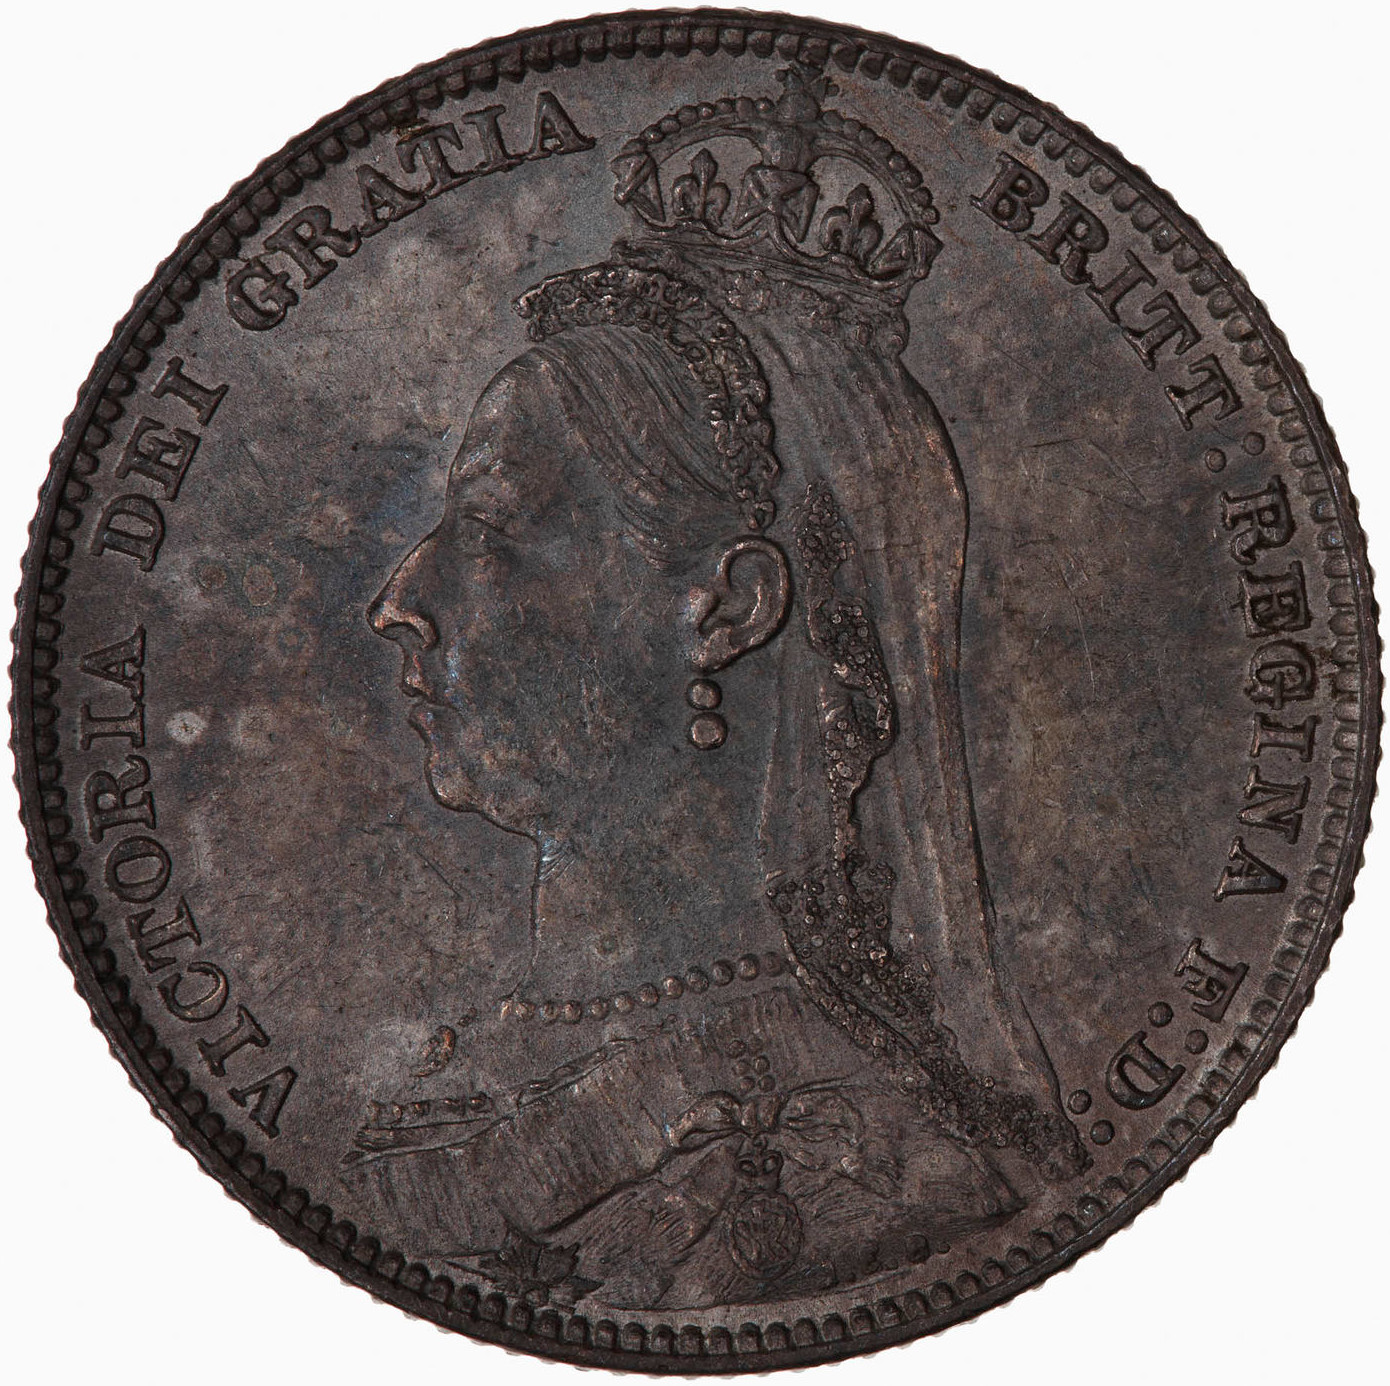 Shilling: Photo Coin - Shilling, Queen Victoria, Great Britain, 1890